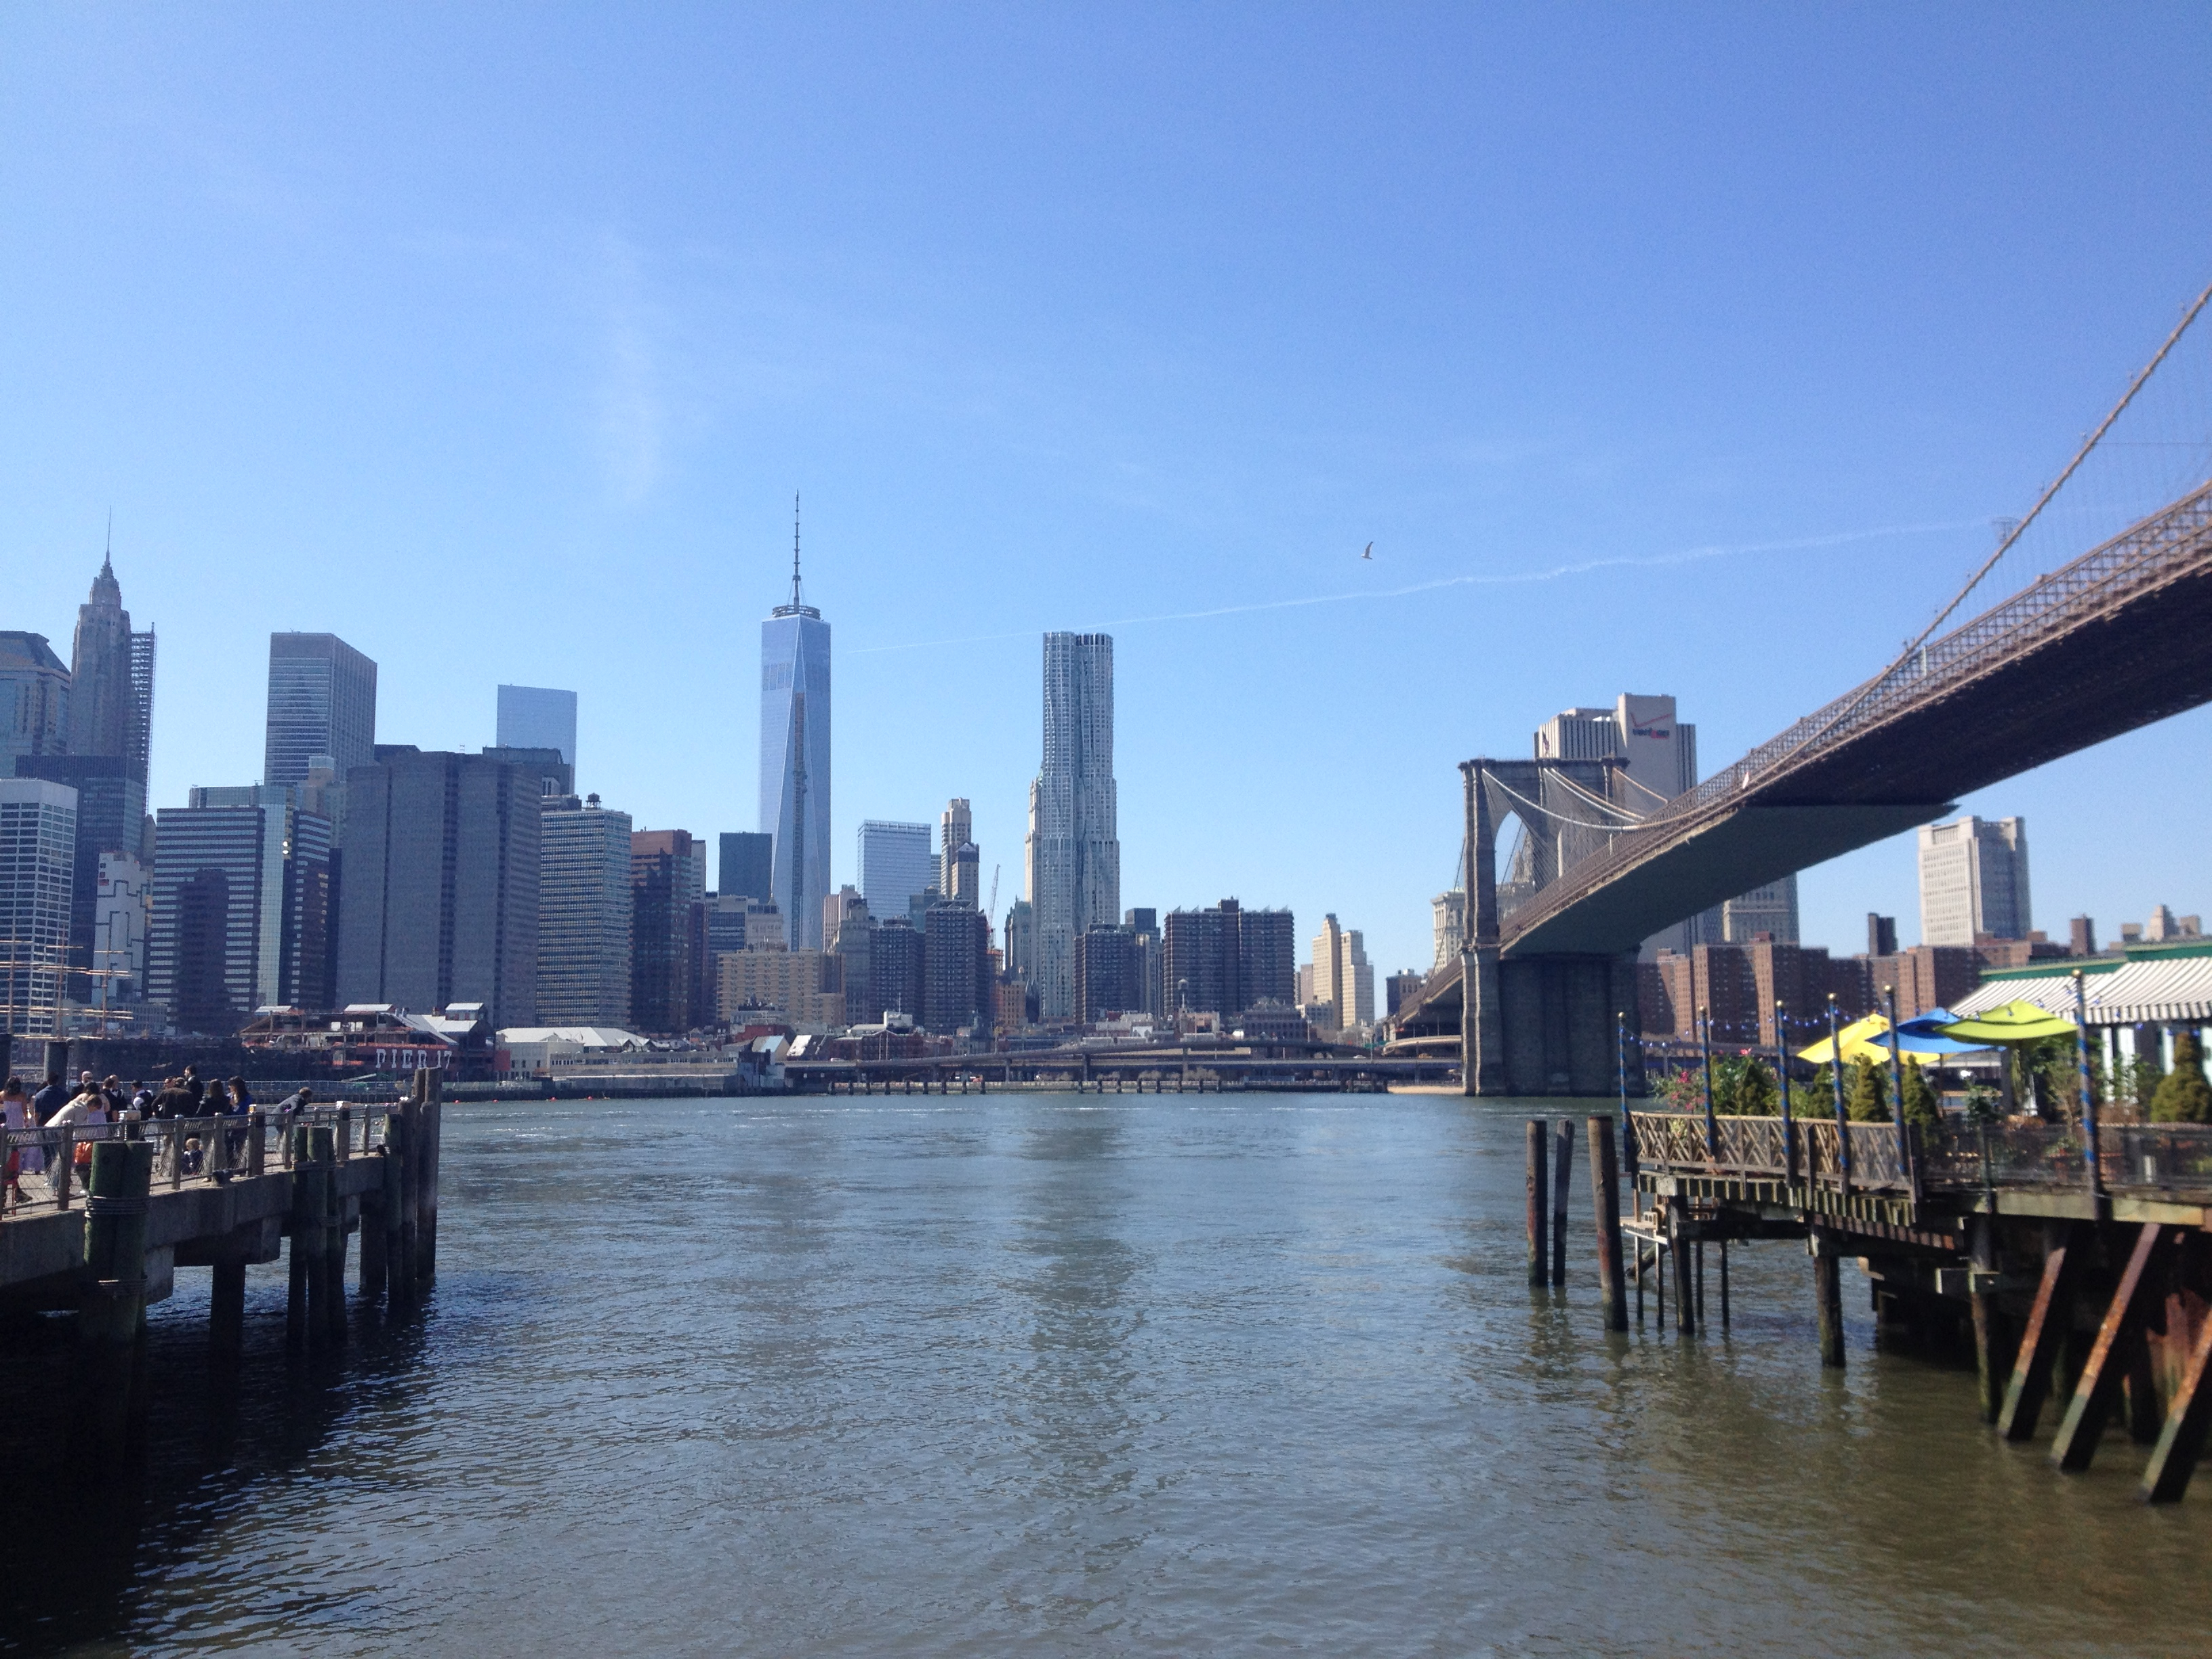 Manhattan Skyline from Dumbo, Brooklyn, NY